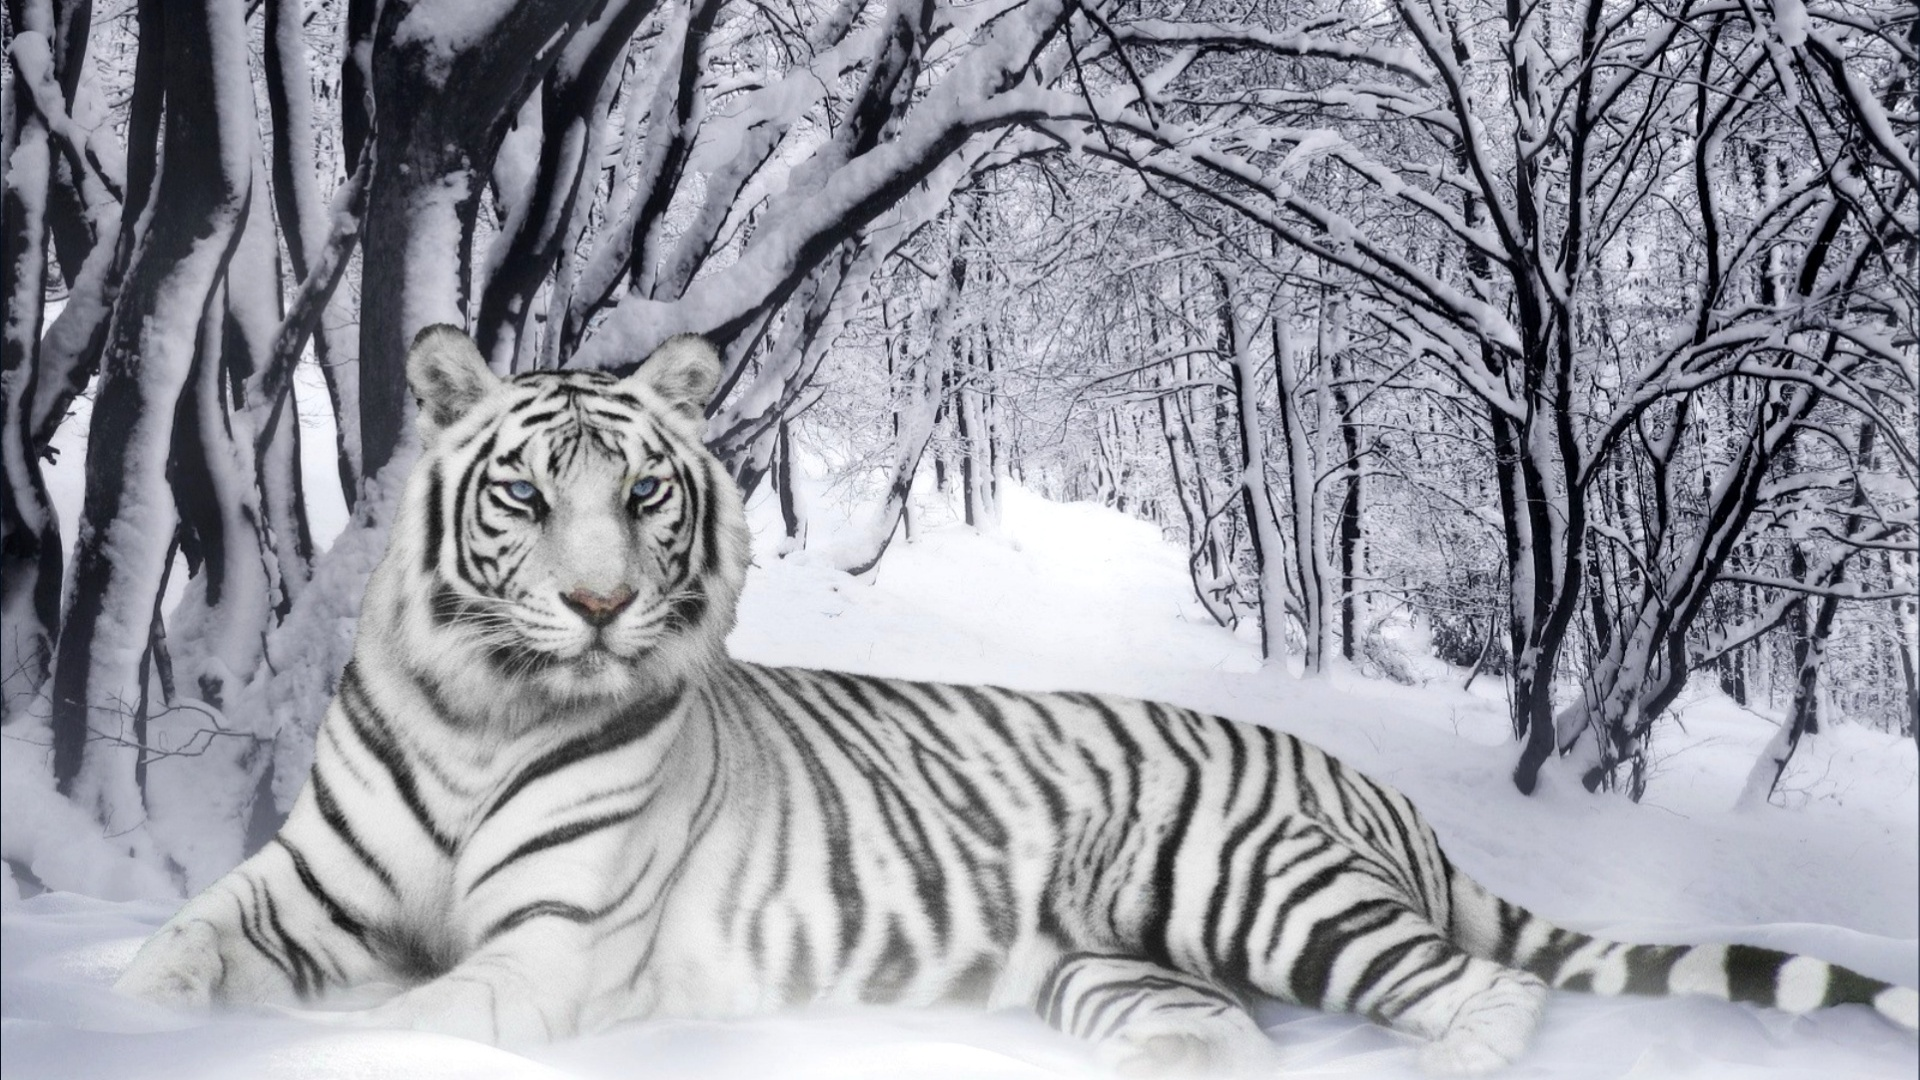 Cute-baby-tiger-dowload-wallpaper-wpc5803820